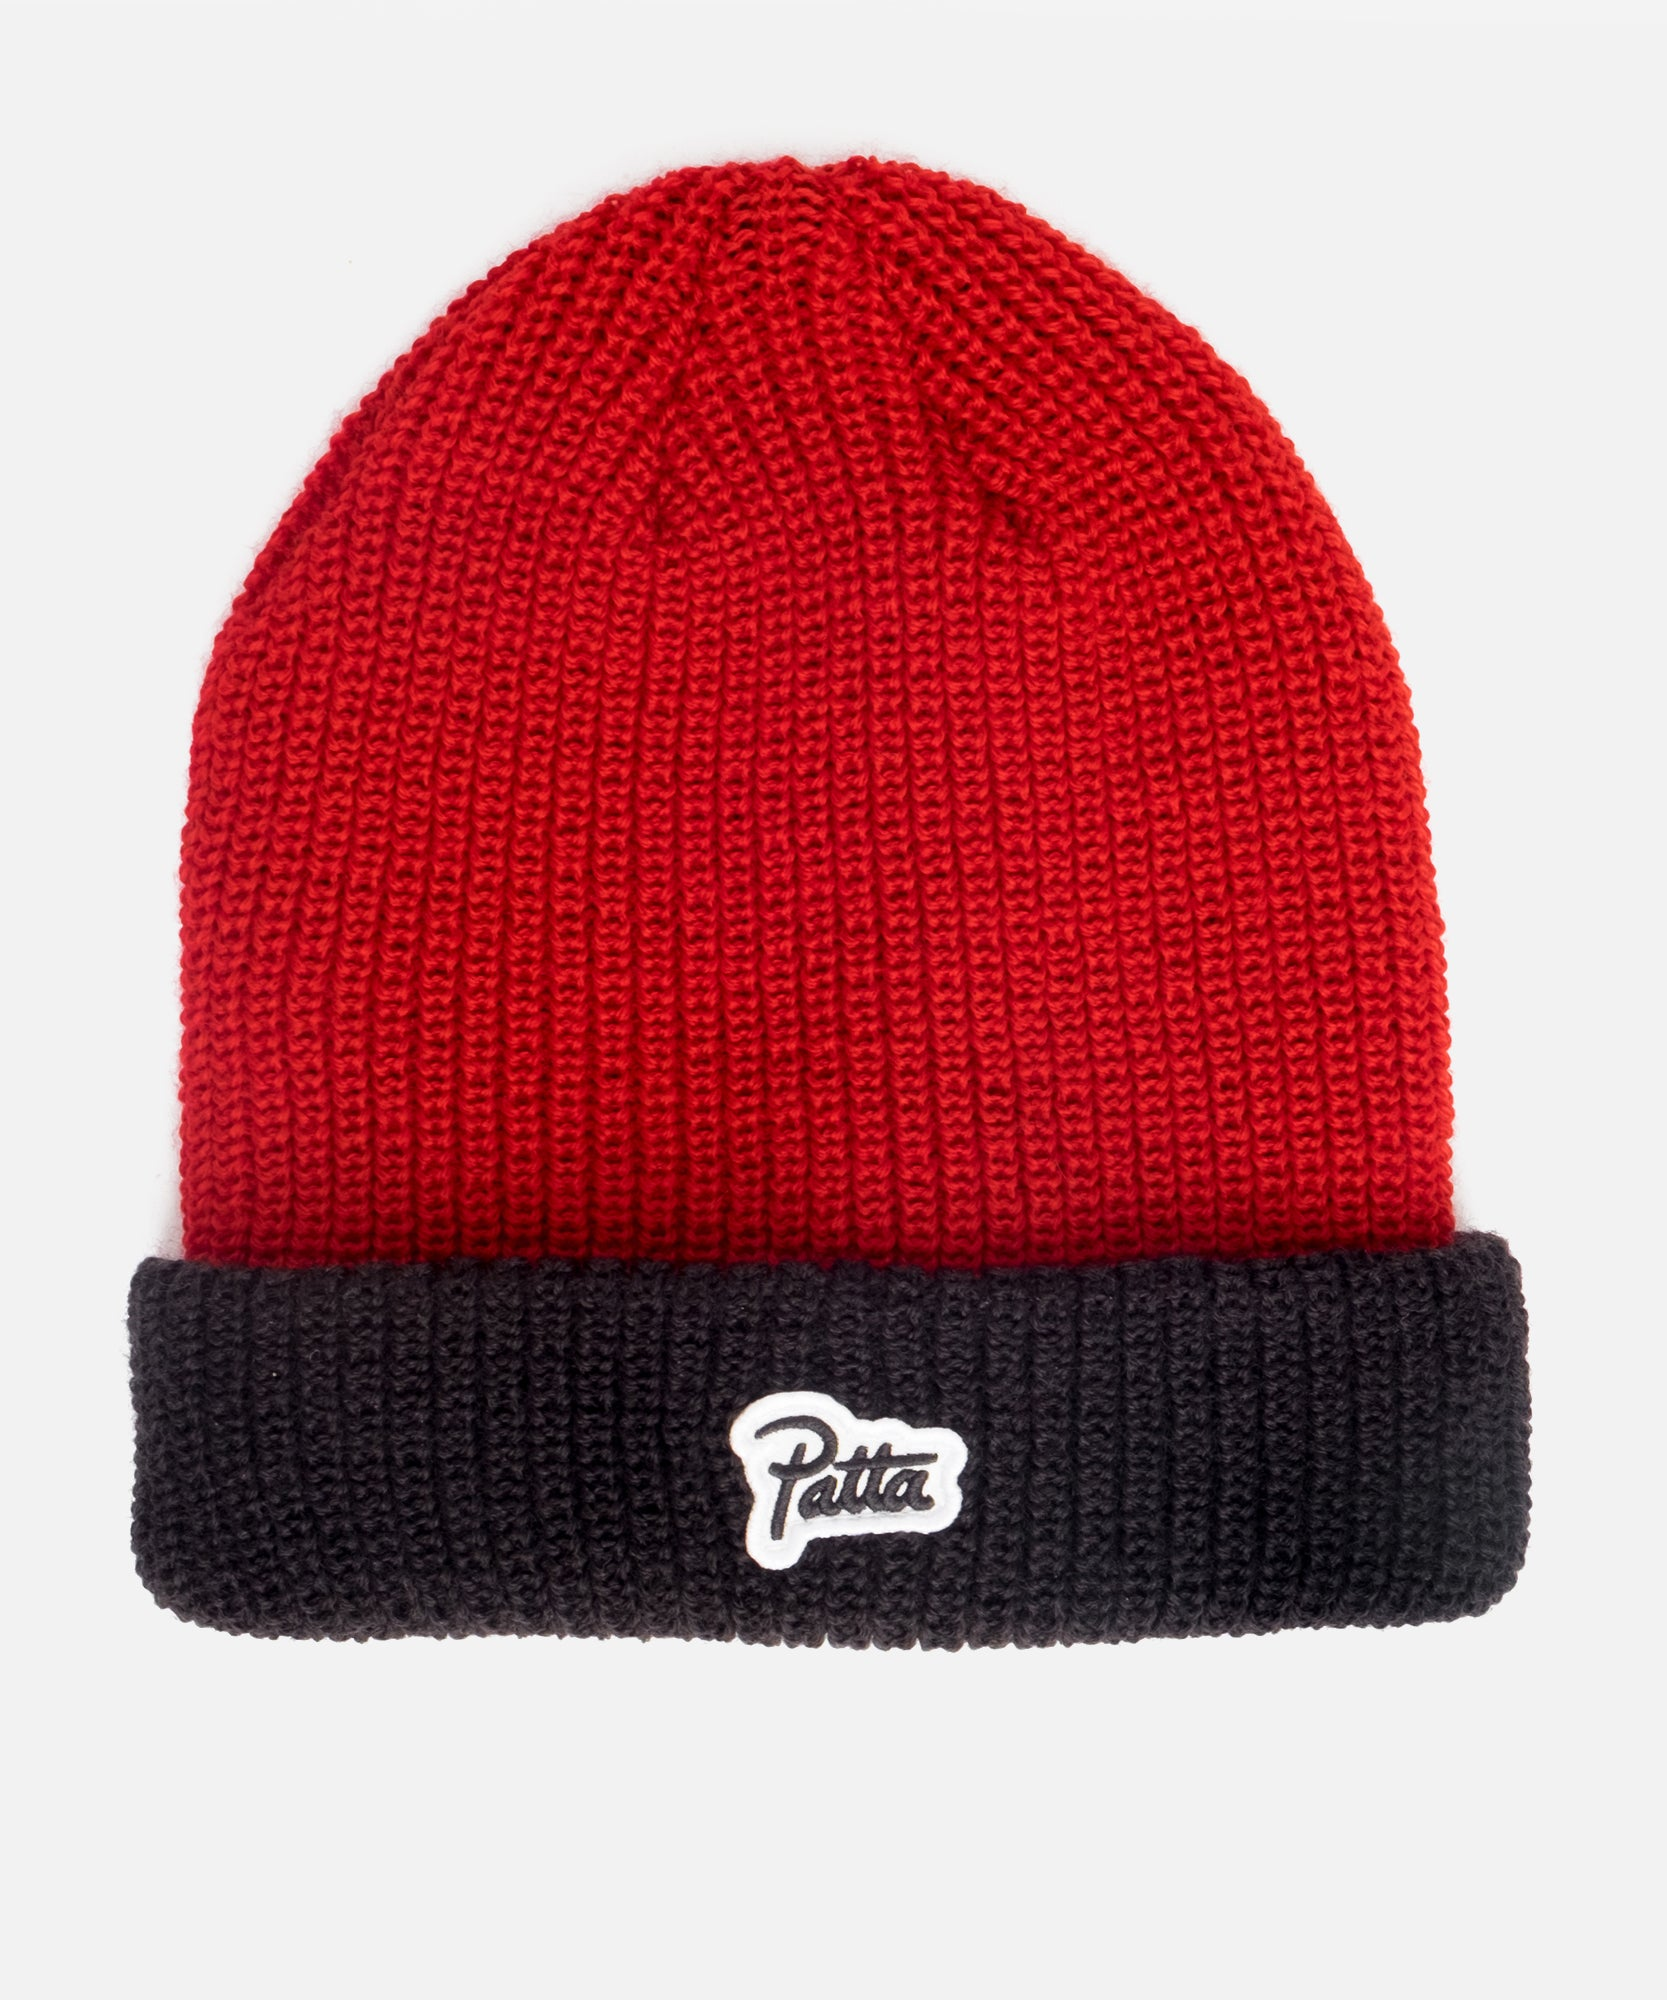 Patta Ribbed Knit Contrast (High Risk Red/Black)